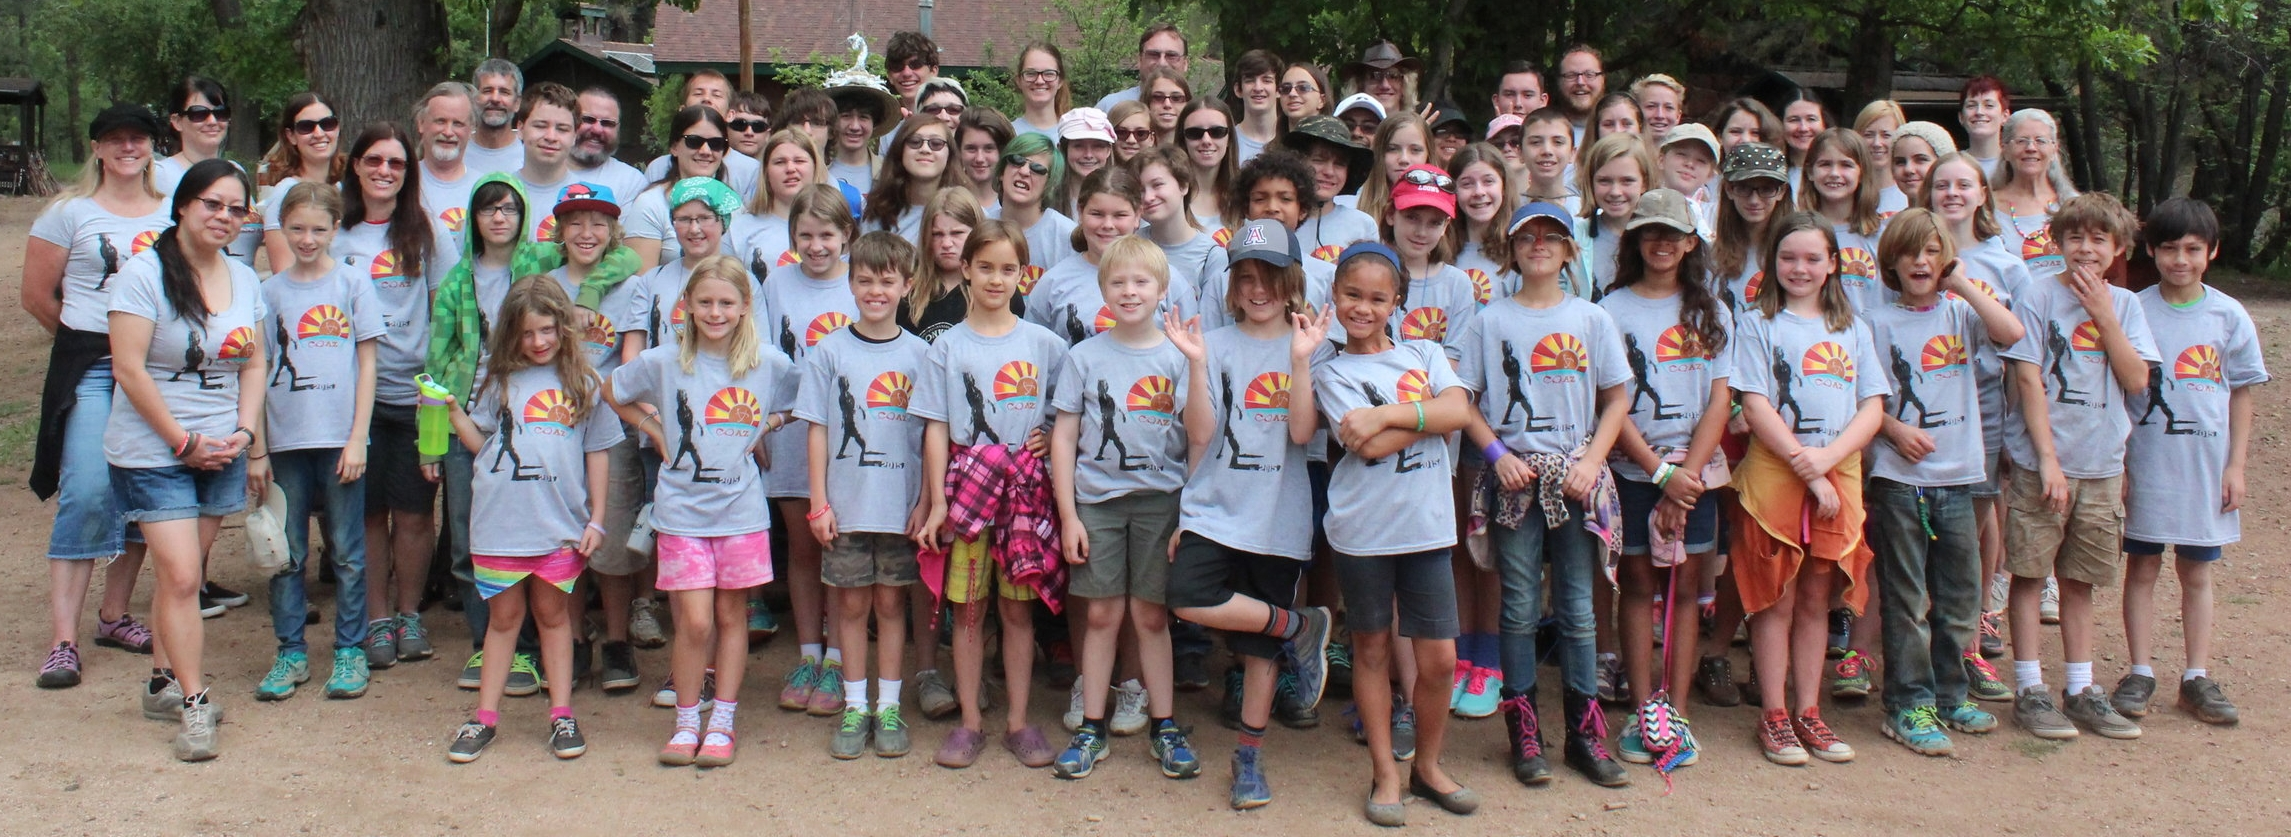 2015 Camp Quest AZ